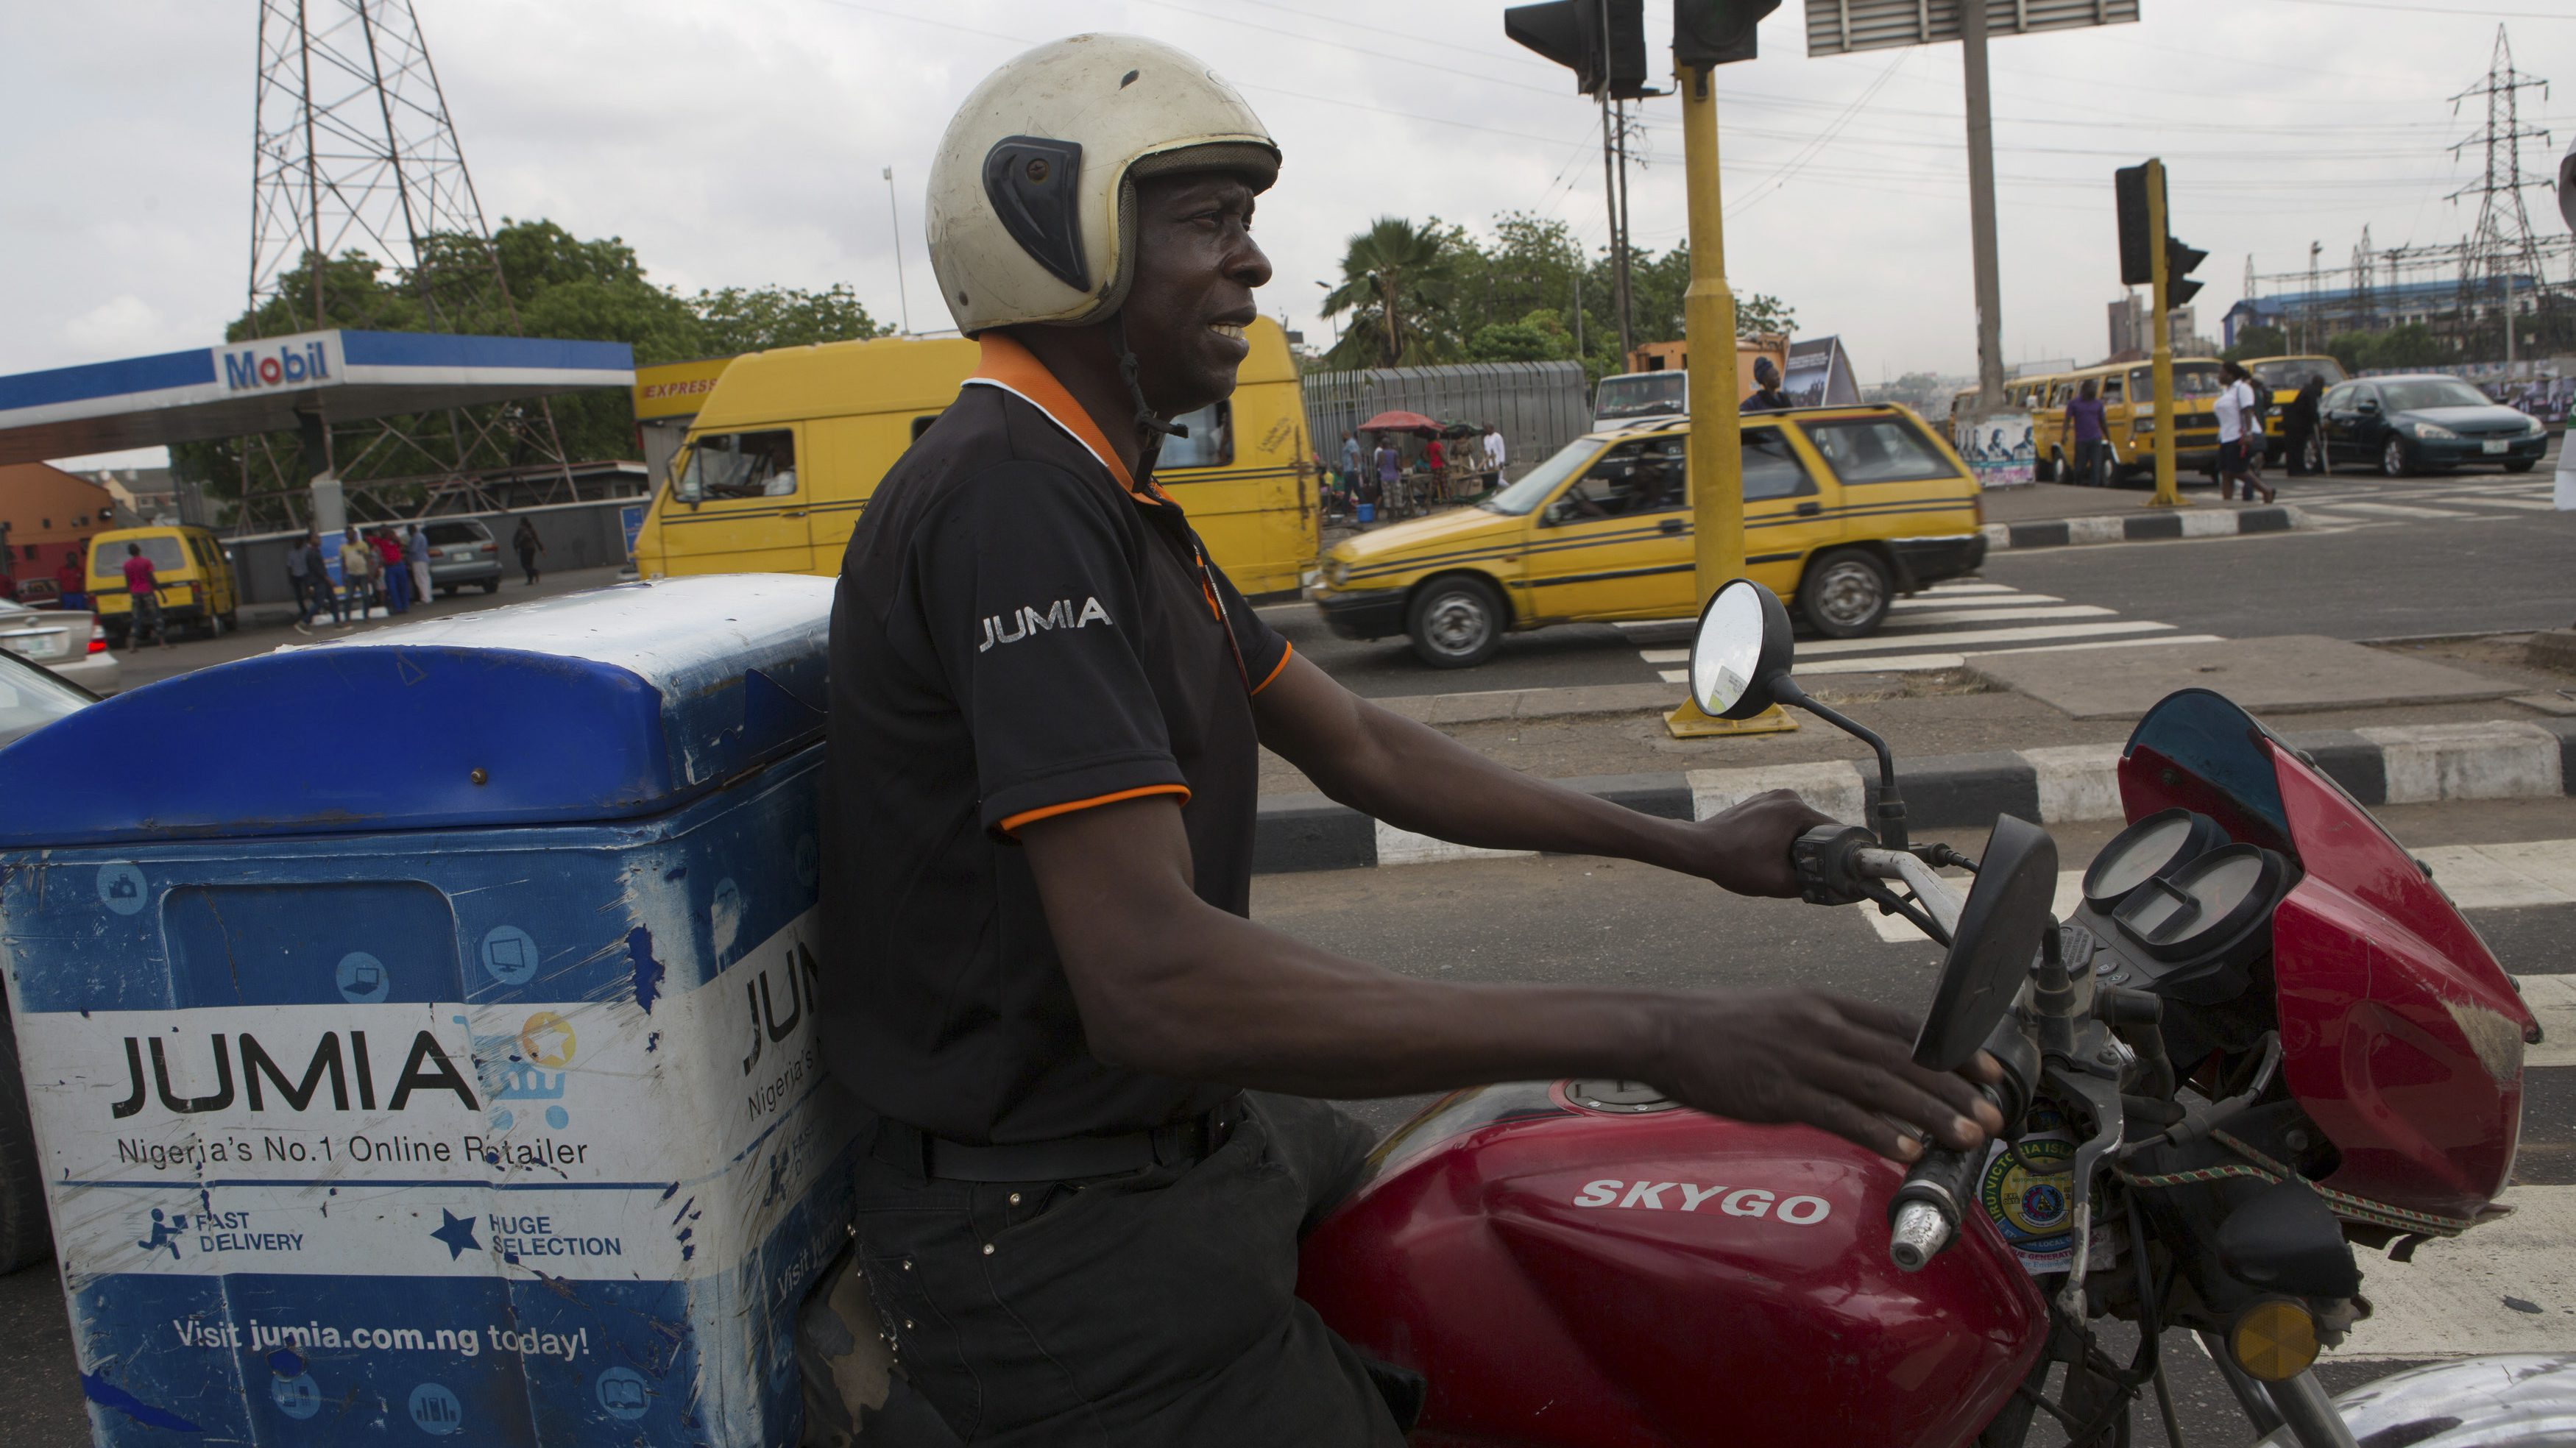 Moses Udoh, an employee of online retailer Jumia, makes a delivery by motorcycle in Lagos February 16, 2015. The growth of Africa's middle class has created demand for products that conventional retail struggles to satisfy due to a shortage of malls and grinding traffic in many cities that deters shoppers. The sector is still in its infancy. The internet's contribution to Africa's gross domestic product stood at 1.1 percent in 2013, much lower than other emerging markets. But this could rise to 10 percent, or $300 billion, by 2025, according to a report by consultants McKinsey's & Company. REUTERS/Joe Penney (NIGERIA - Tags: BUSINESS TRANSPORT SOCIETY EMPLOYMENT) - RTR4PT4B